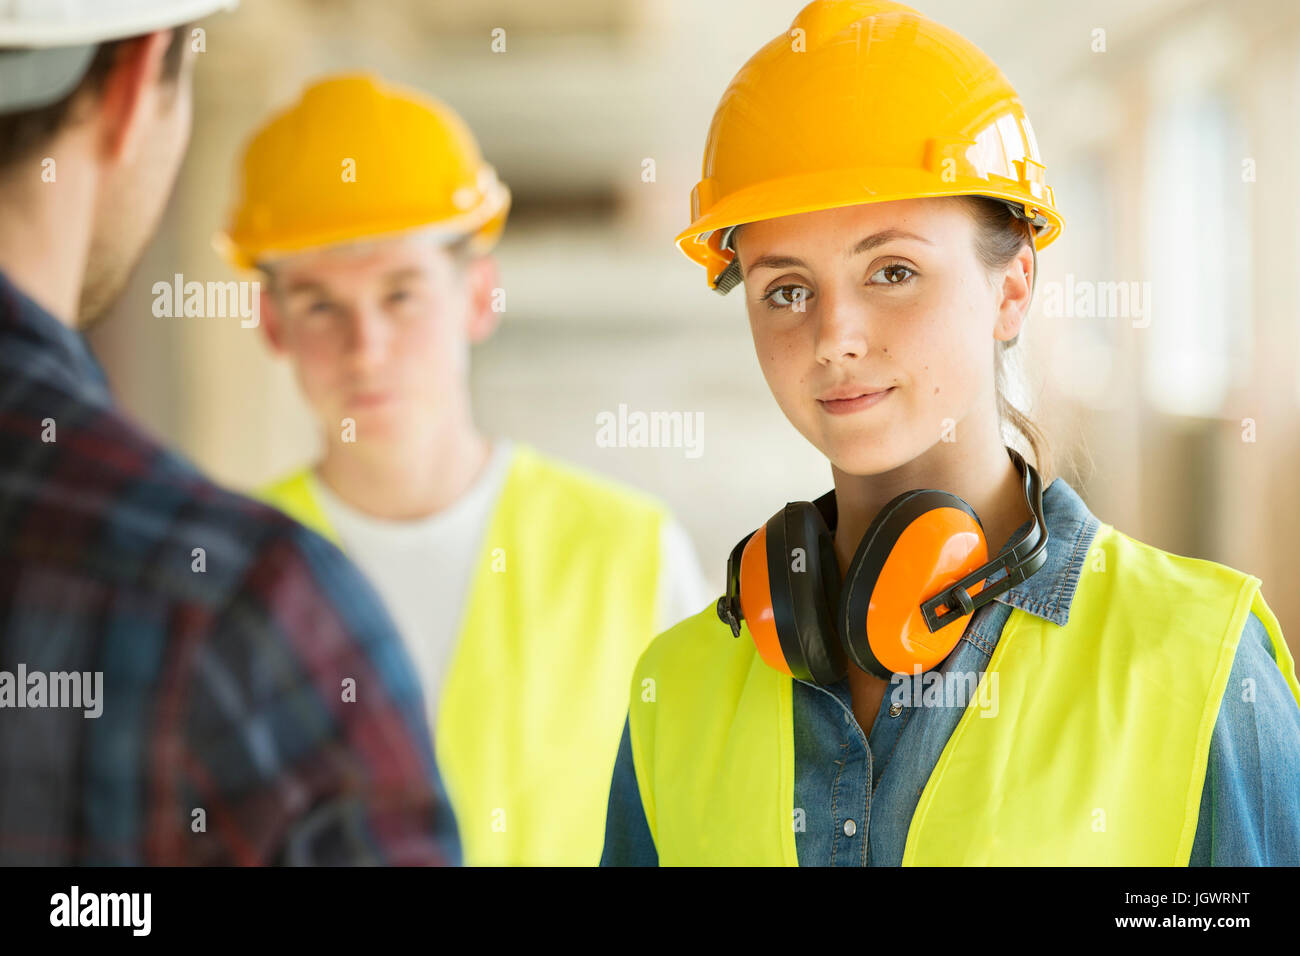 Portrait of woman wearing hard hat and hi vis vest, co-workers in background - Stock Image